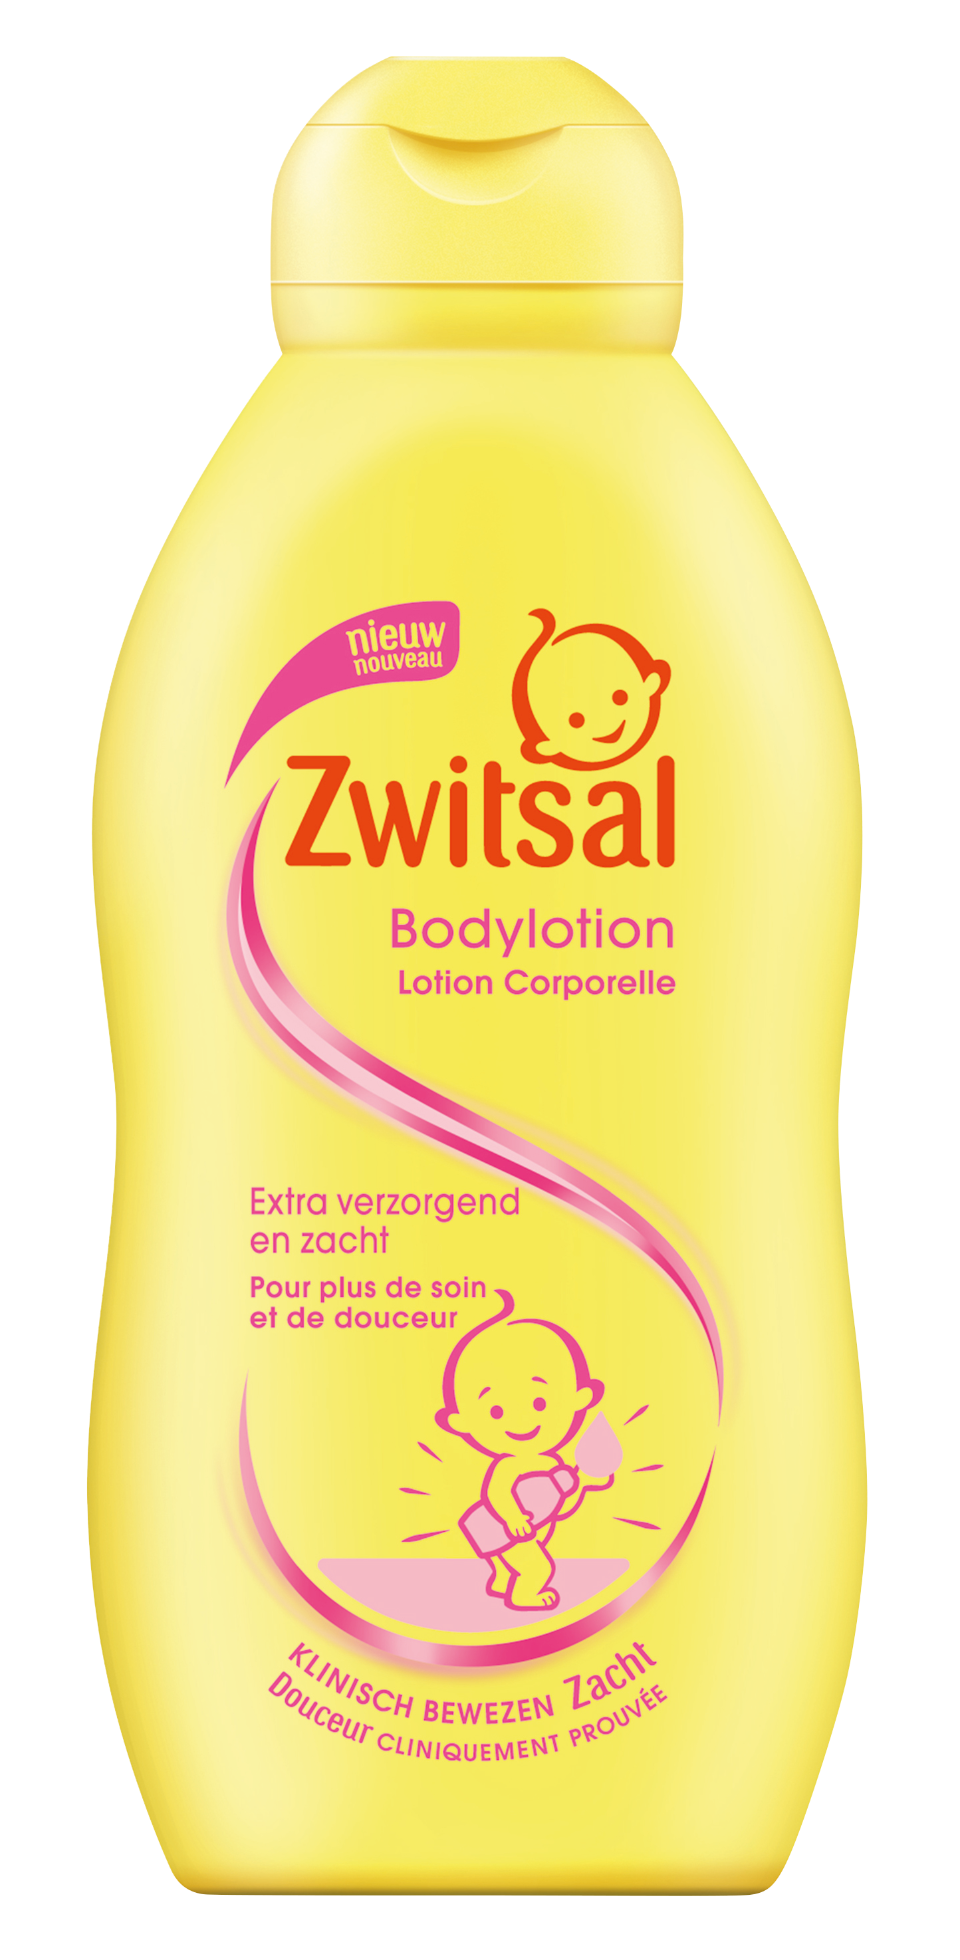 Bodylotion   transparent background